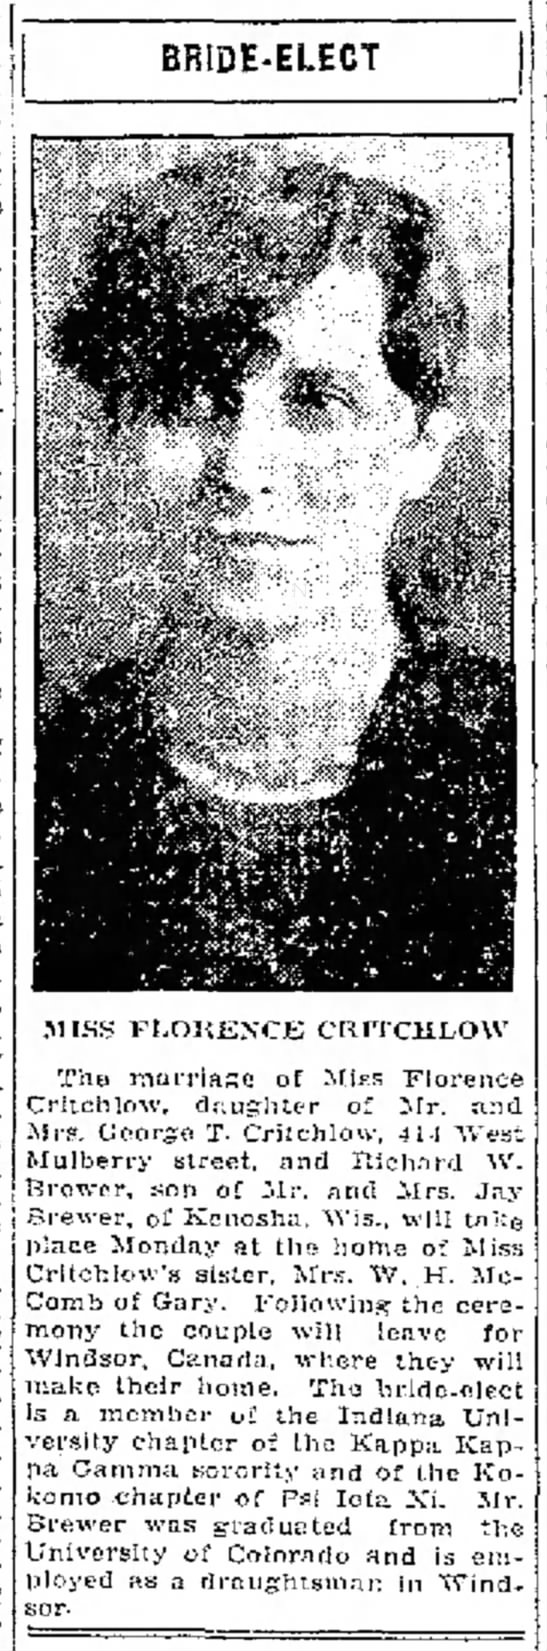 Florence Critchlow & Richard W Brewer Marriage Announcement More Research